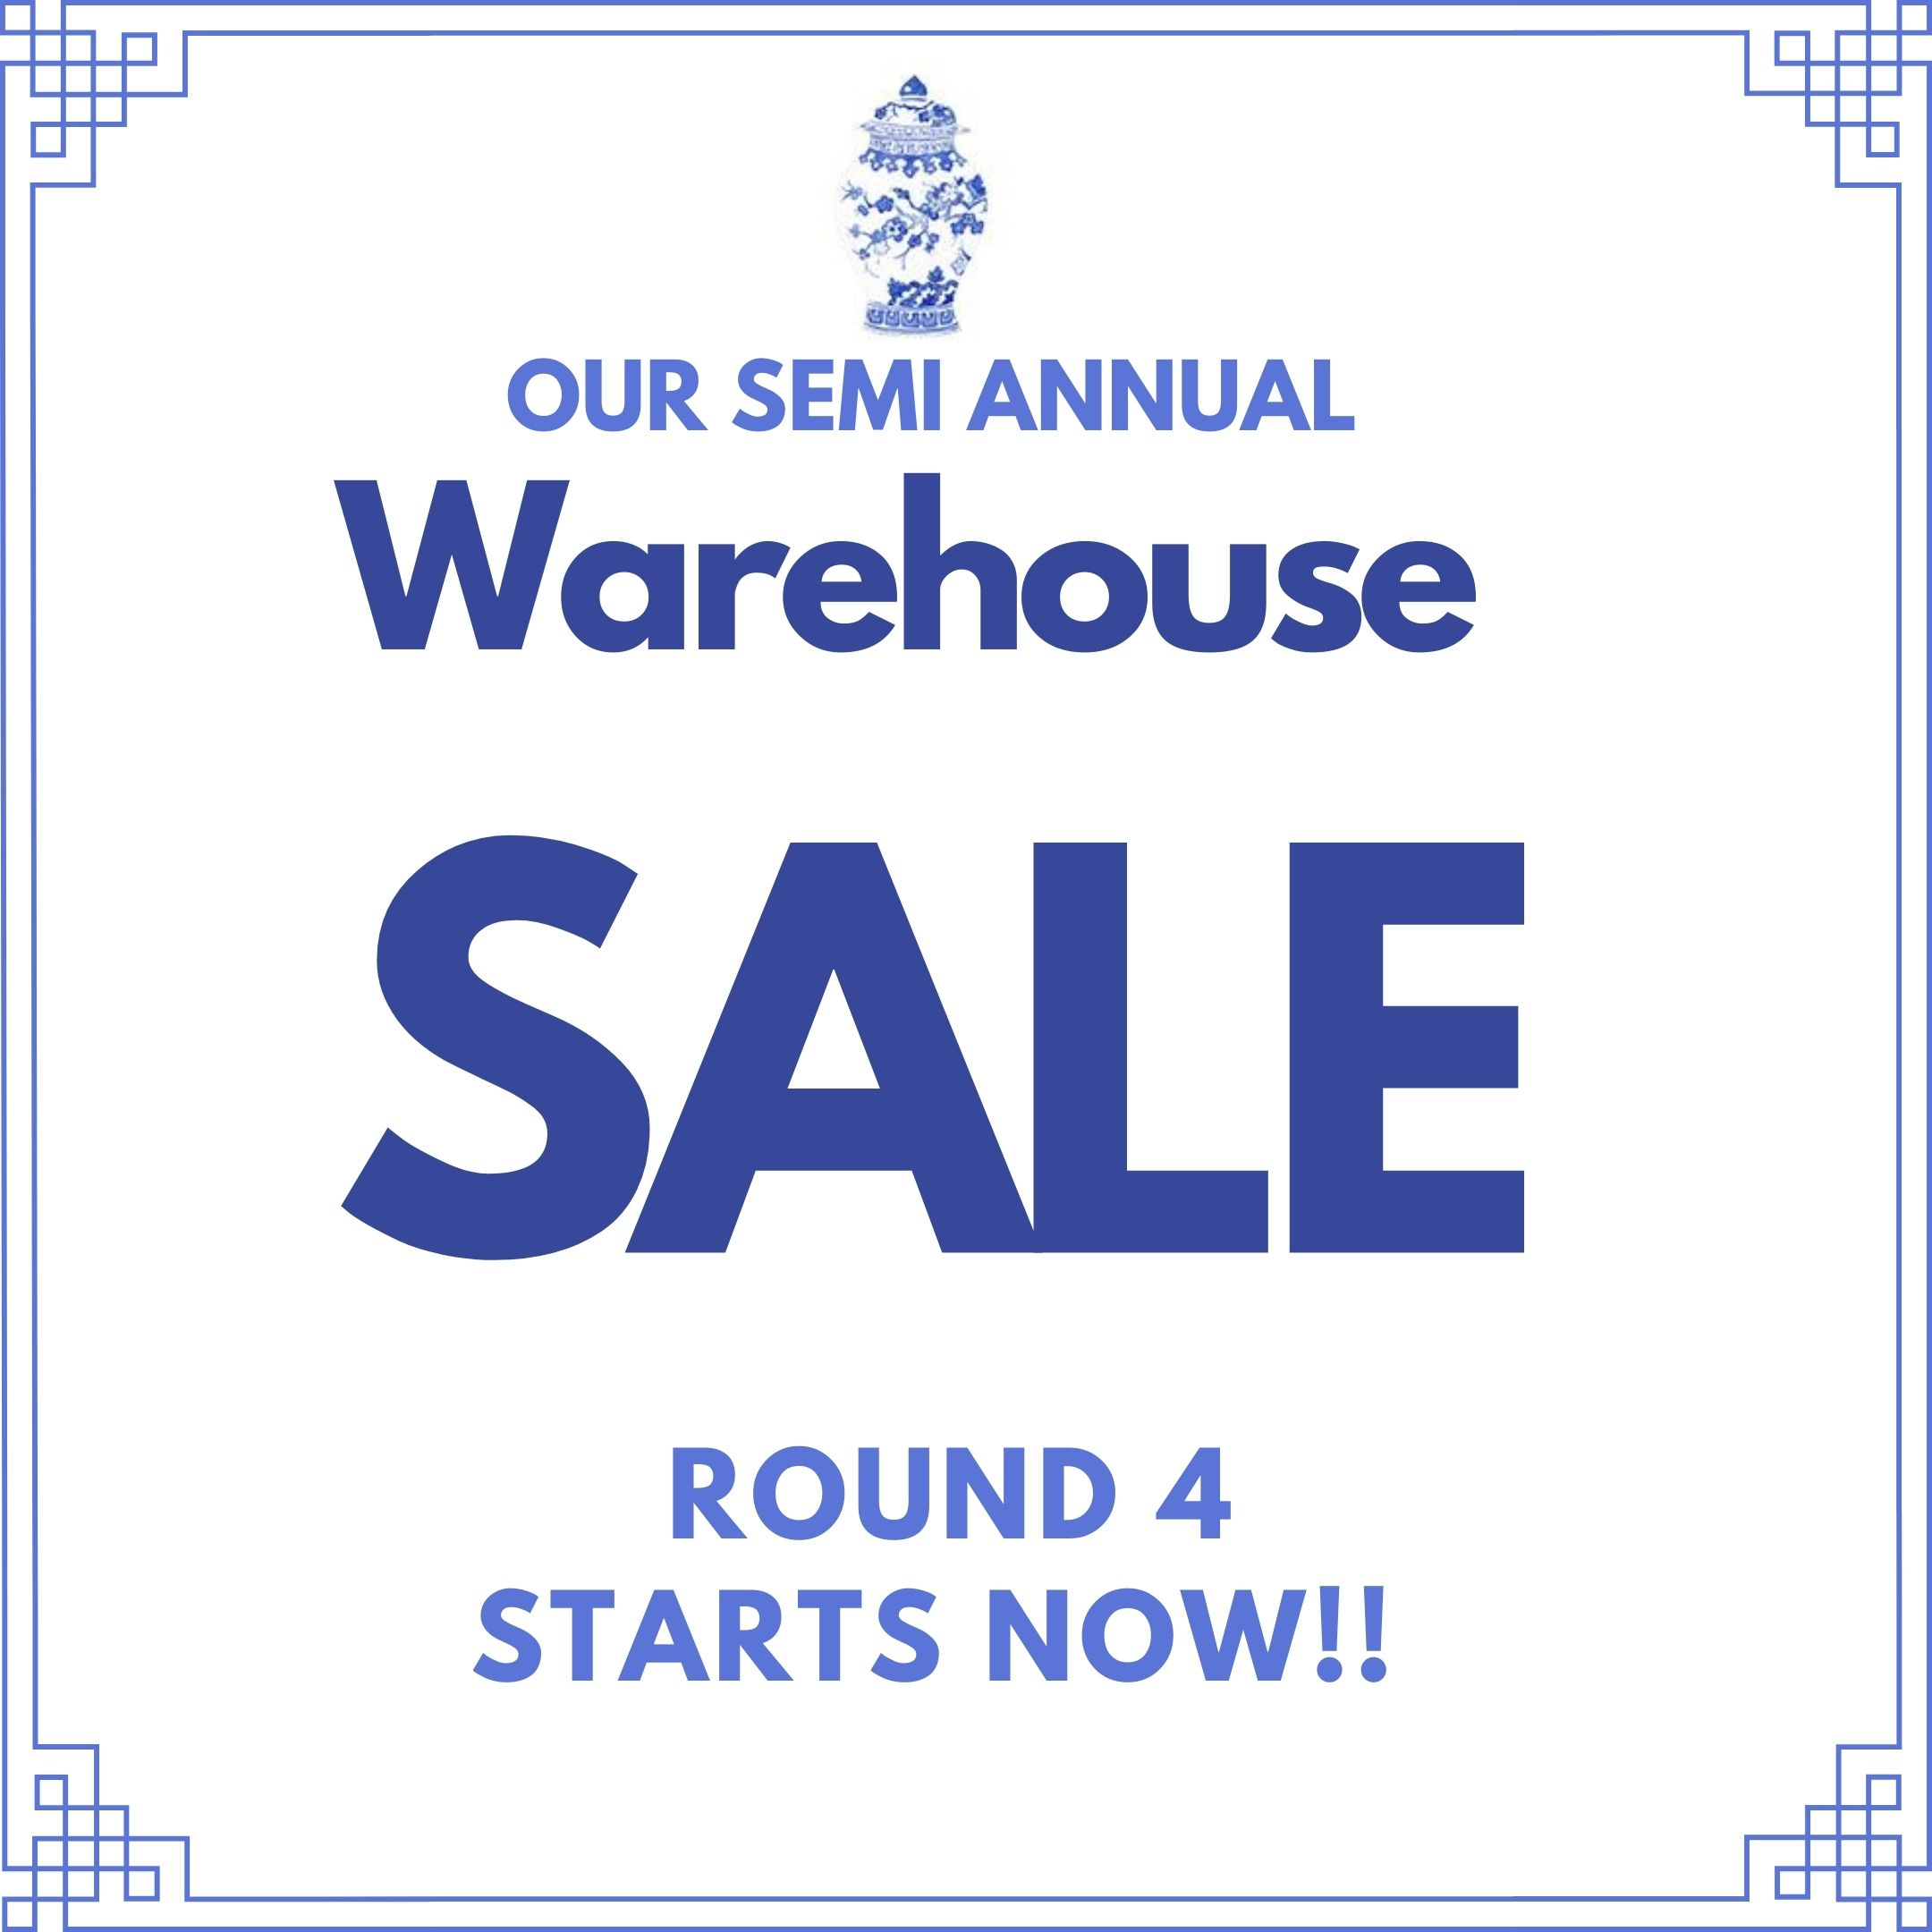 Our semi annual warehouse sale is on- part 4!